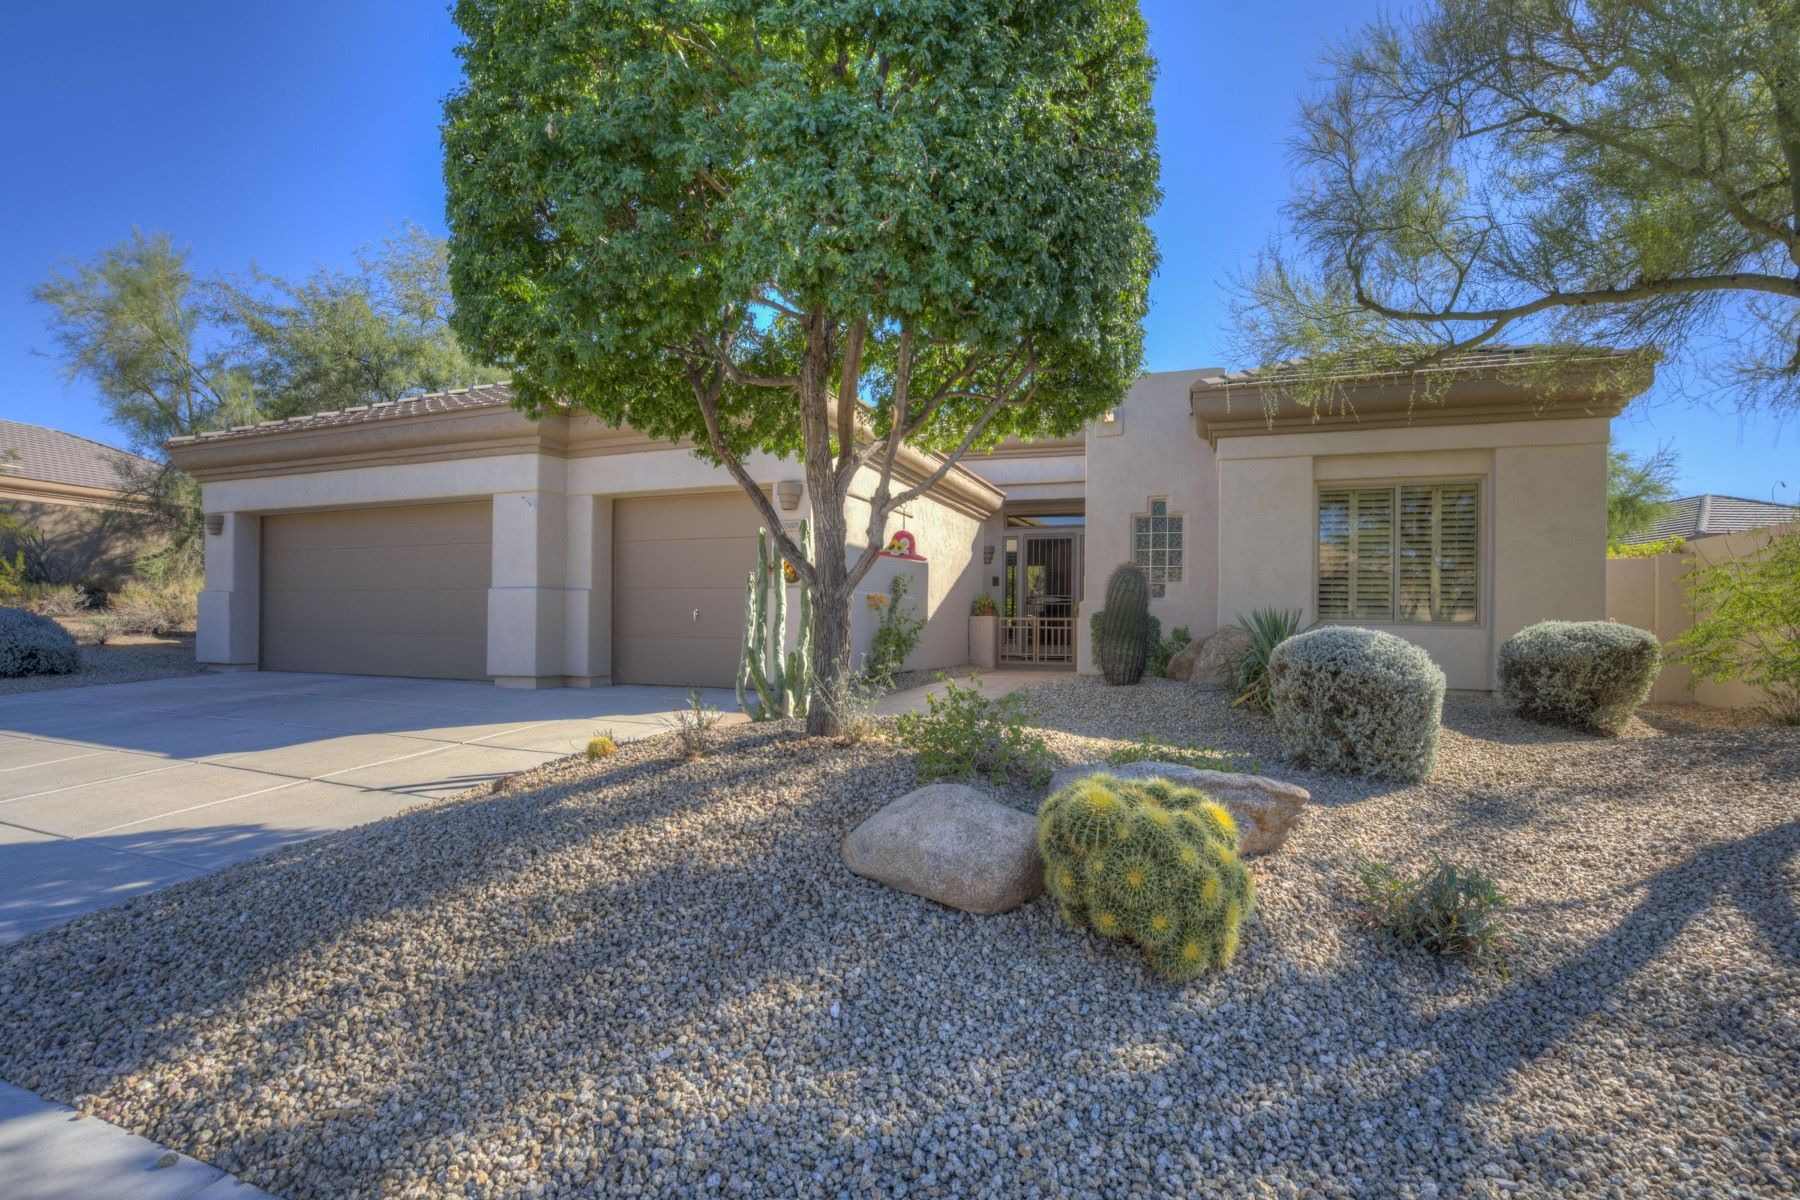 Casa Unifamiliar por un Venta en Spacious sought after Stella model in Terravita Country Club 6583 E Brilliant Sky Dr Scottsdale, Arizona, 85266 Estados Unidos